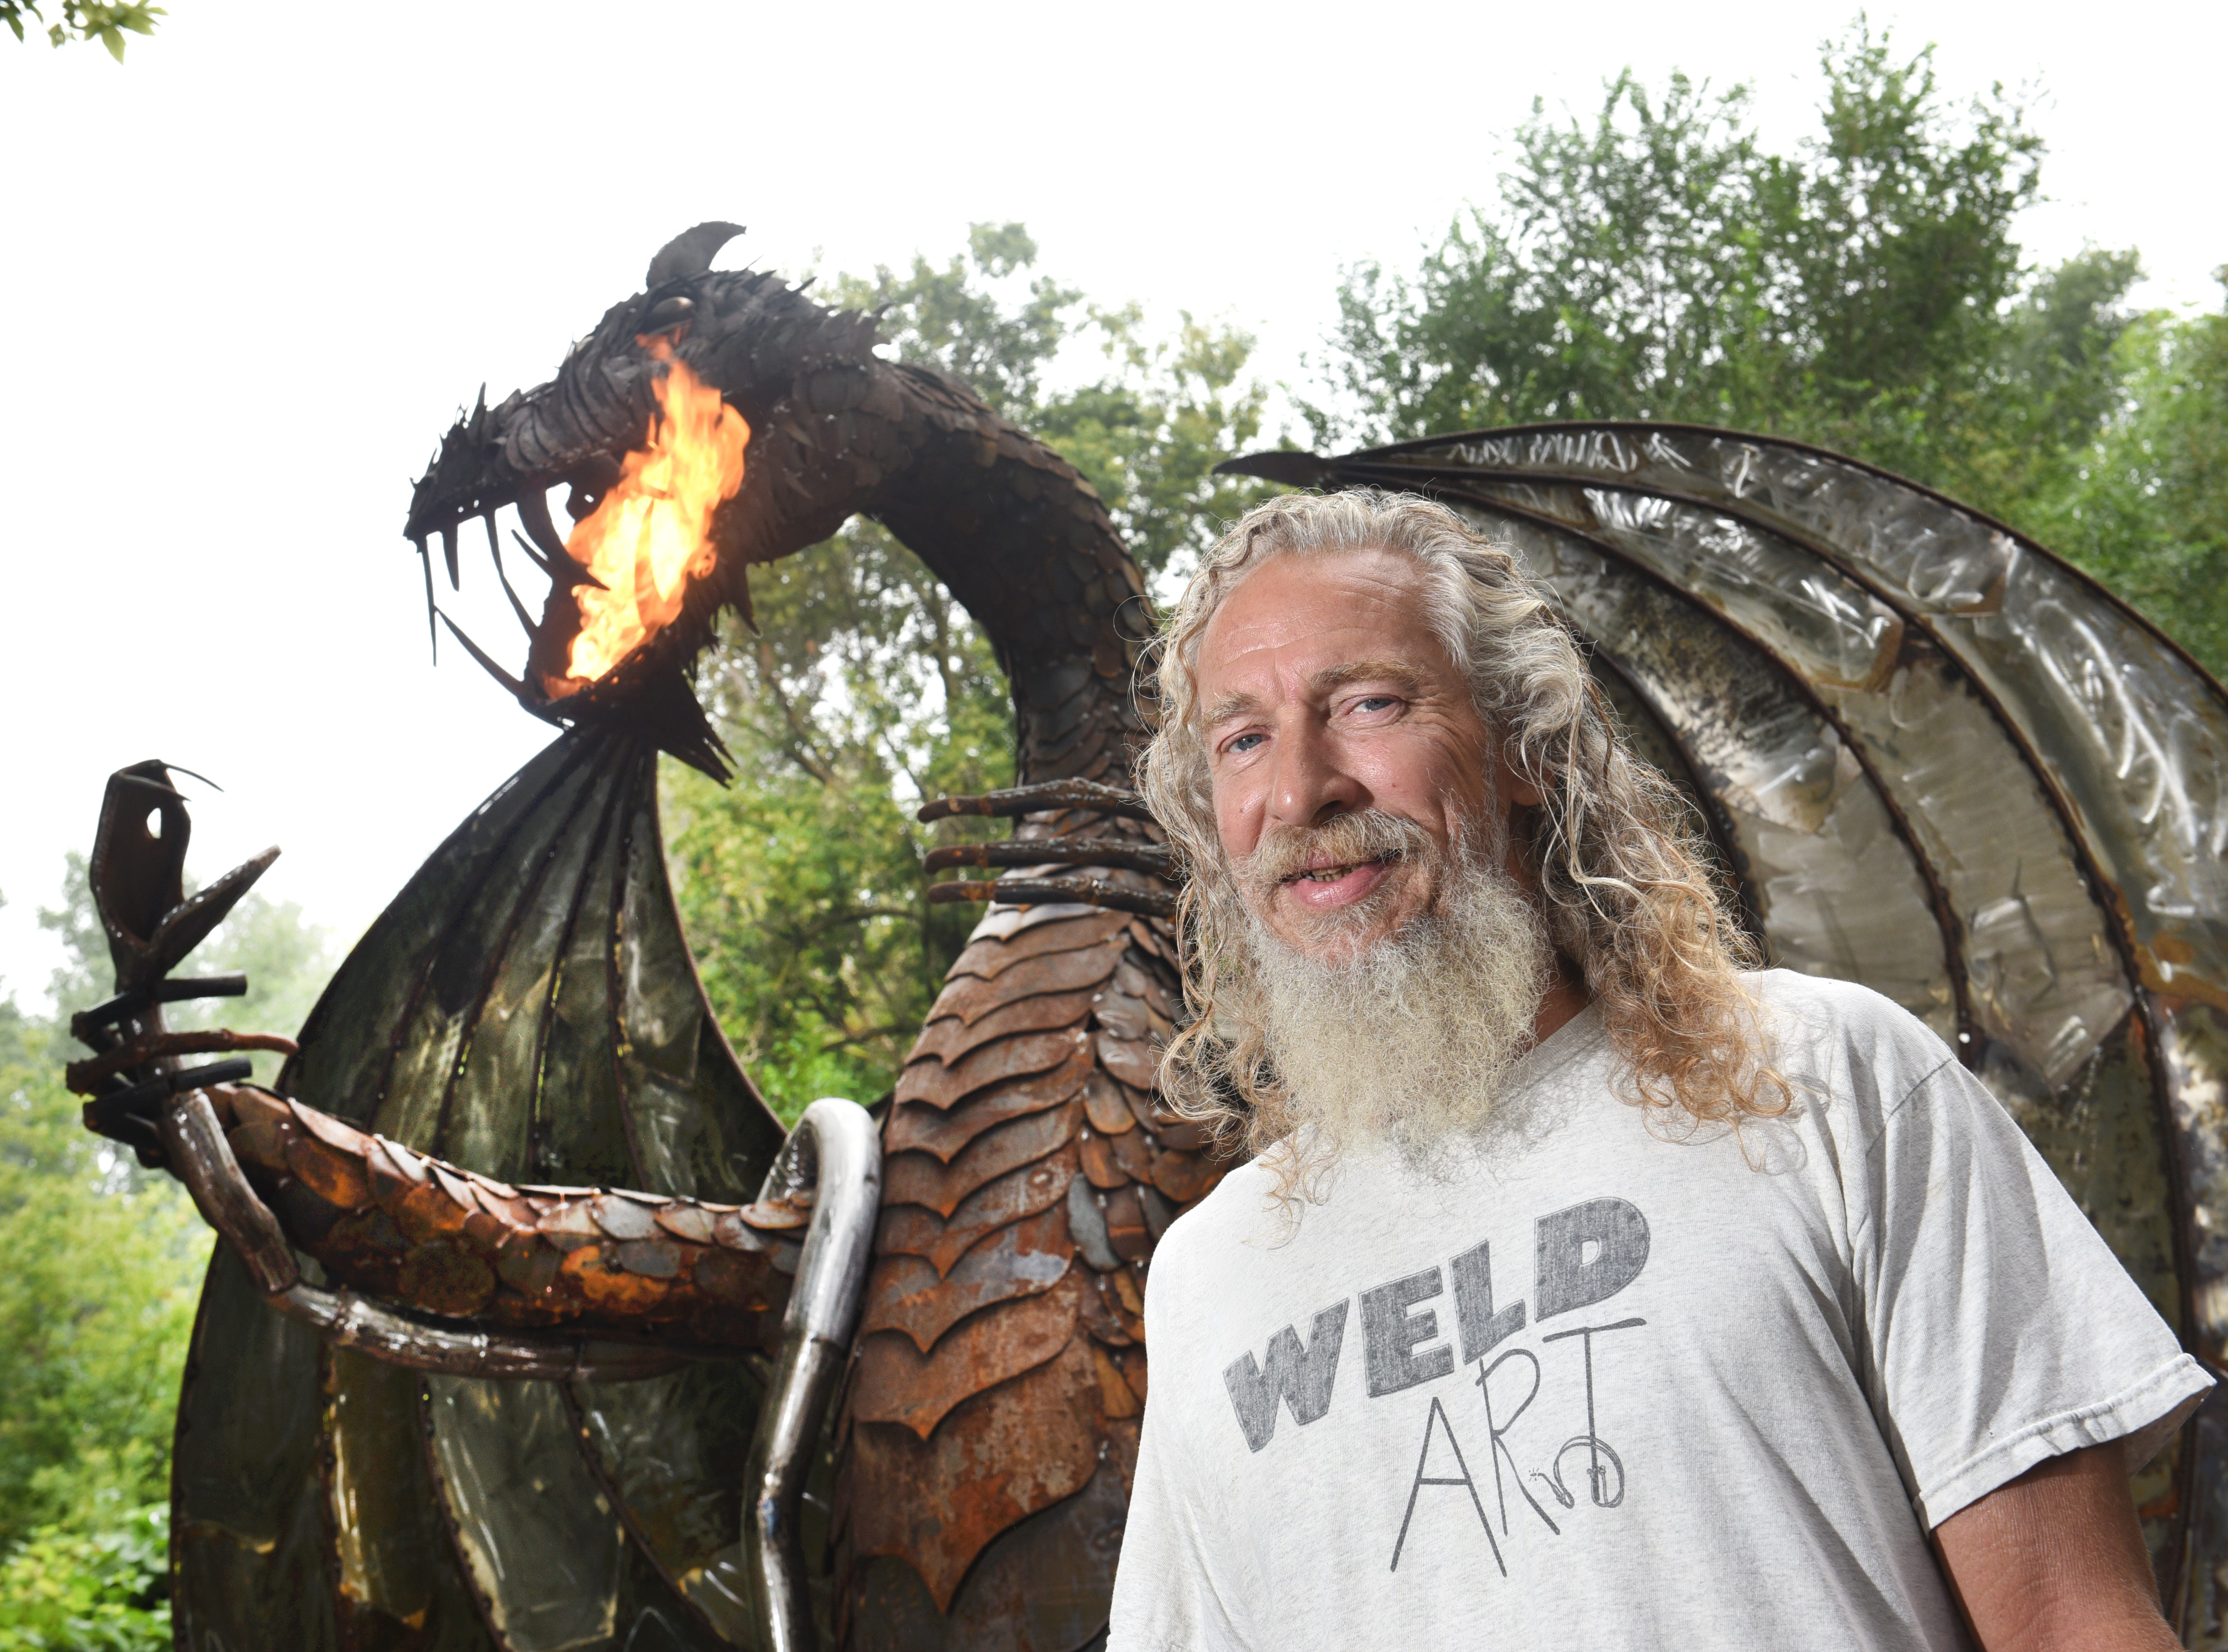 Taylor metalworker Keith Coleman with his 12-foot fire breathing dragon on Thursday, August 16, 2018 will take the metal beast to ArtPrize in September.